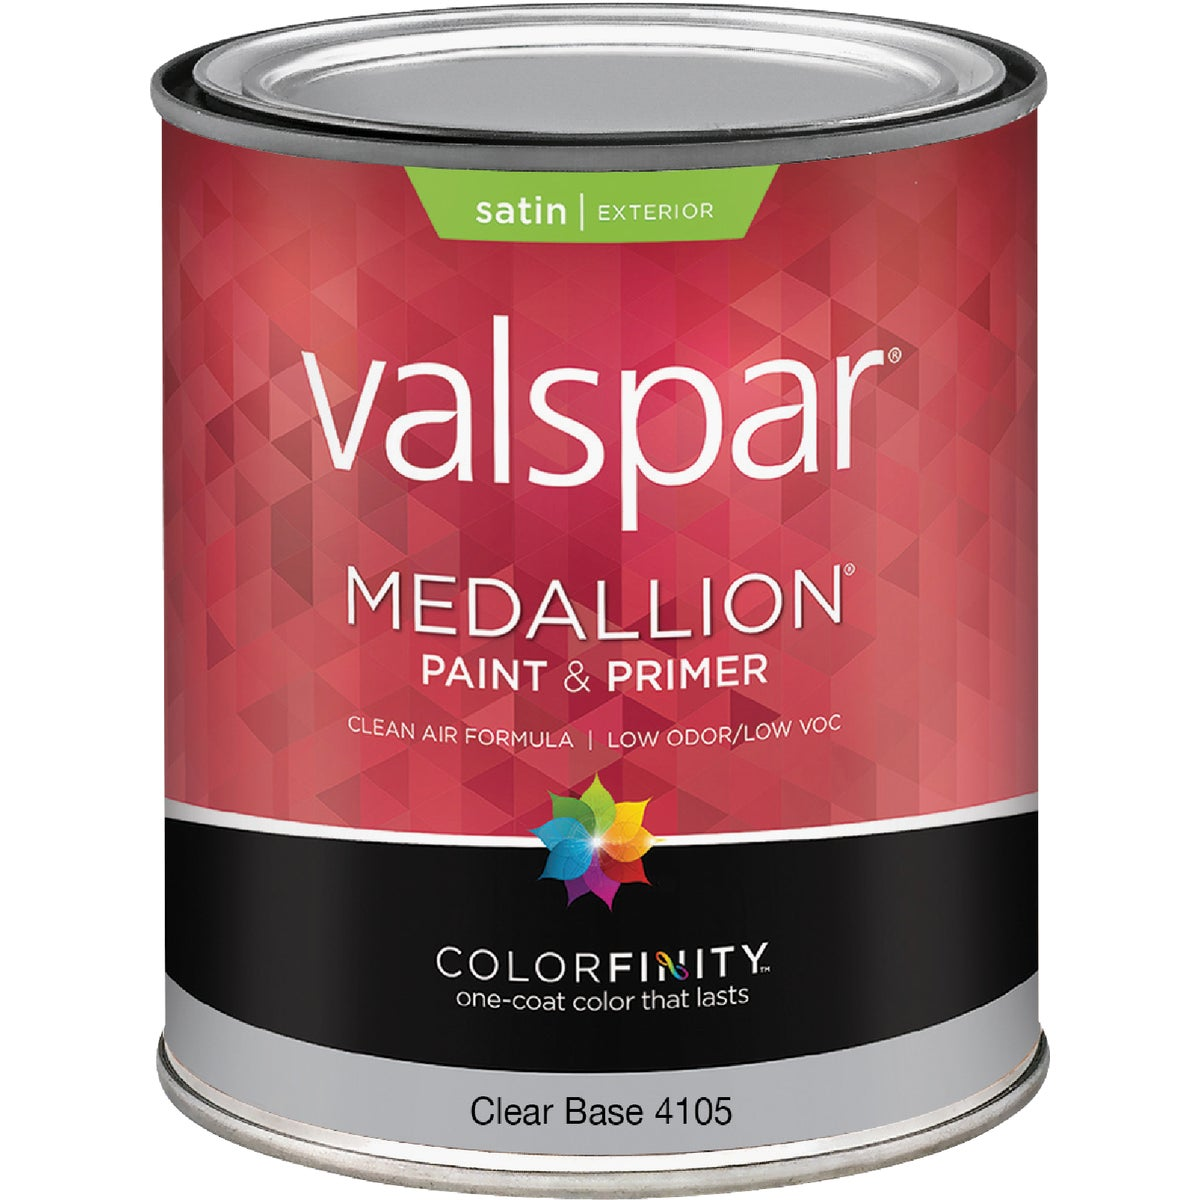 EXT SAT CLEAR BS PAINT - 027.0004105.005 by Valspar Corp